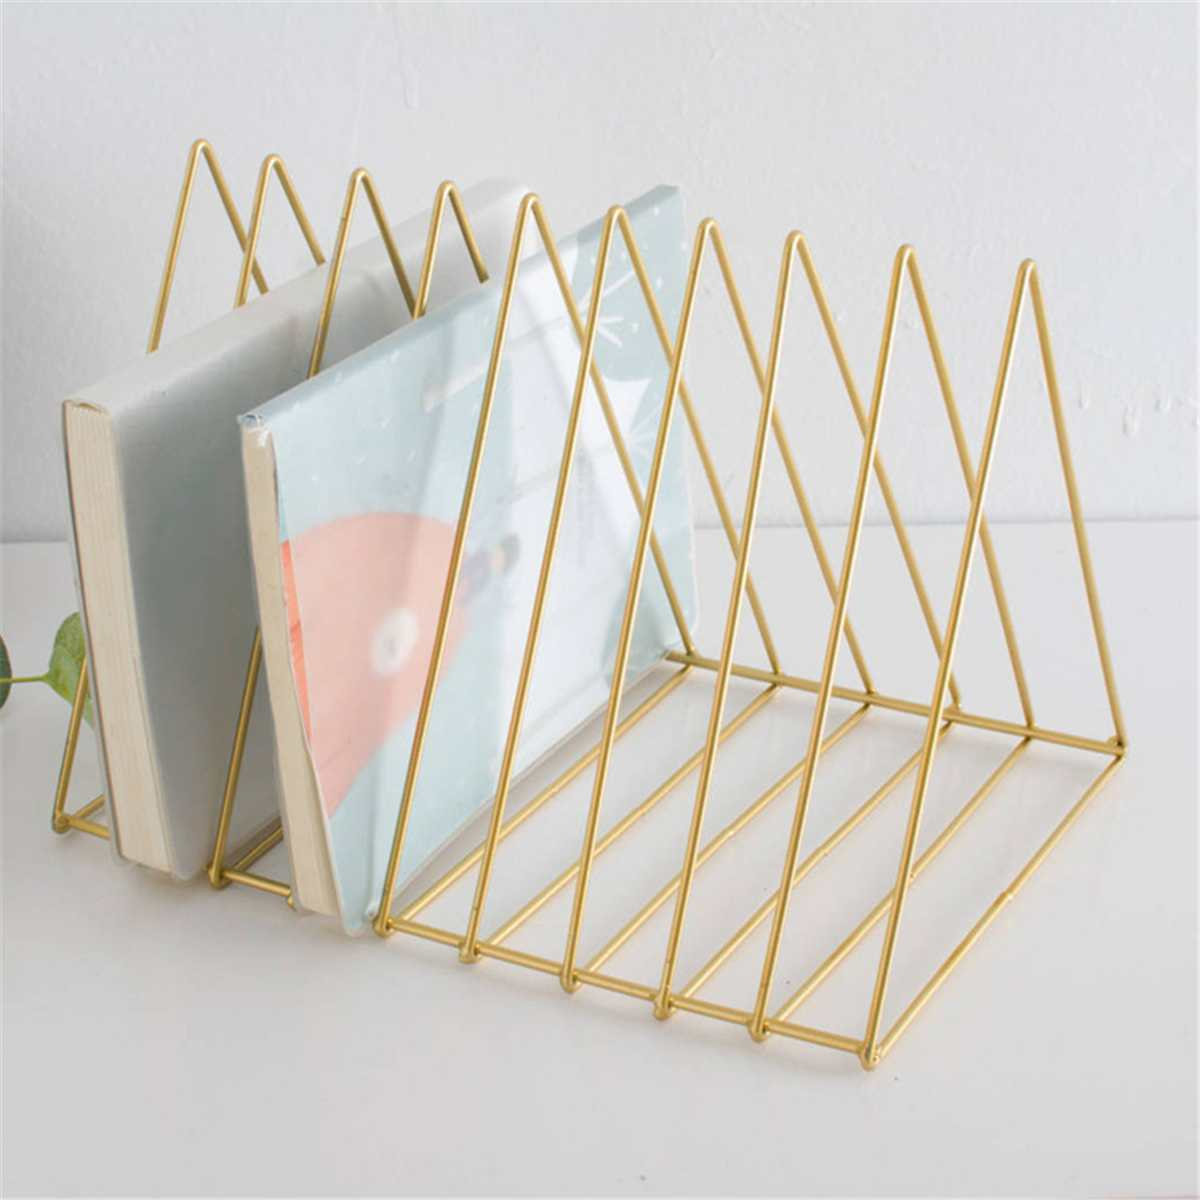 Bücherregal Metall Gold Luxus Bücherregal Metall Dreieck Eisen Kunst Desktop Bücherregal Brief Magazin Rack Halter Home Office Lagerung Wohnkultur Regal